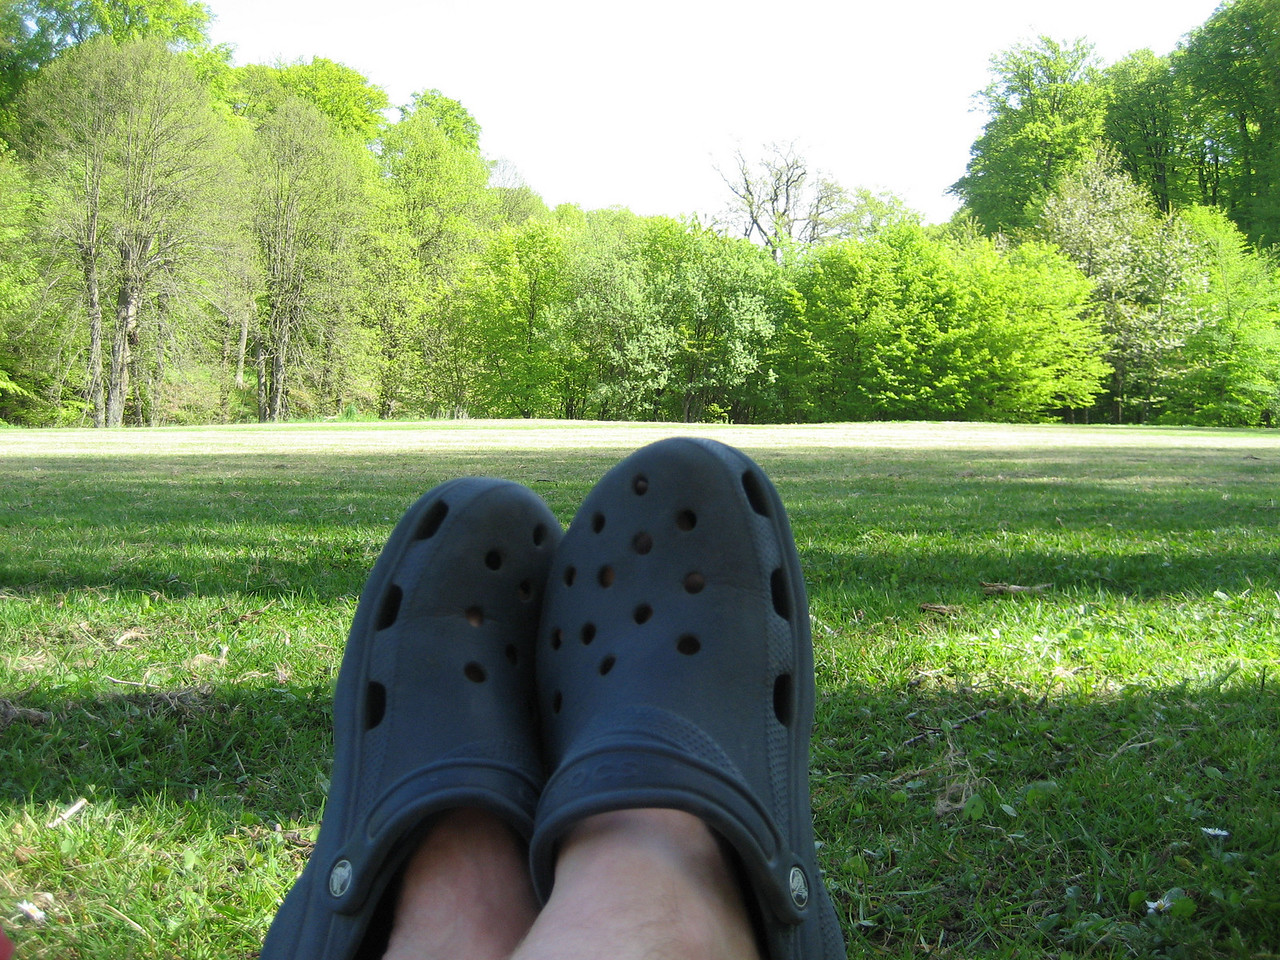 Danes don't like crocs- I do.